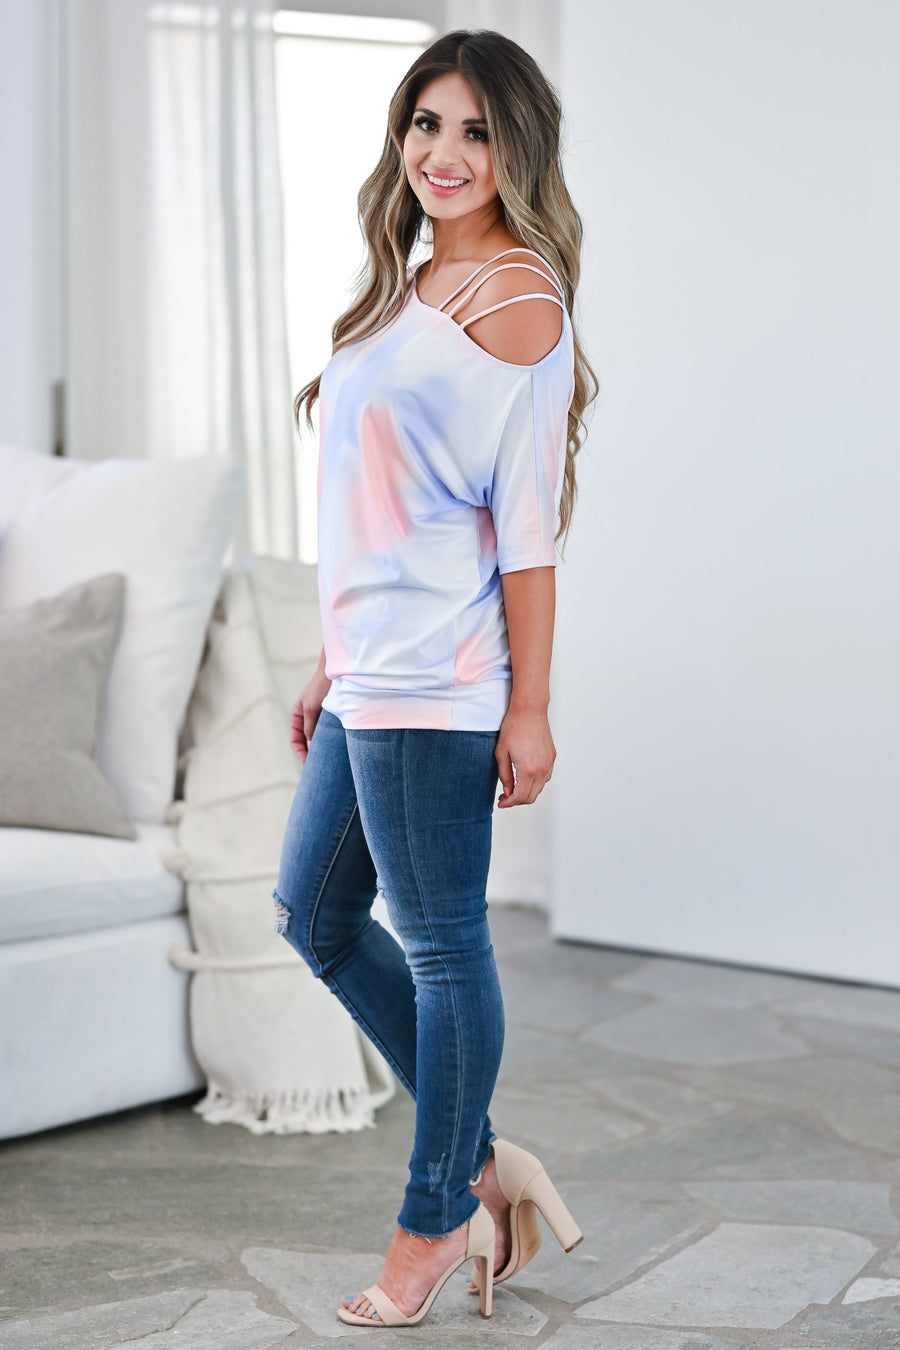 CBRAND Catching Feelings Tie Dye Top - Cotton Candy tie-dye knit top featuring an asymmetrical neckline with cold shoulder strap detail closet candy front